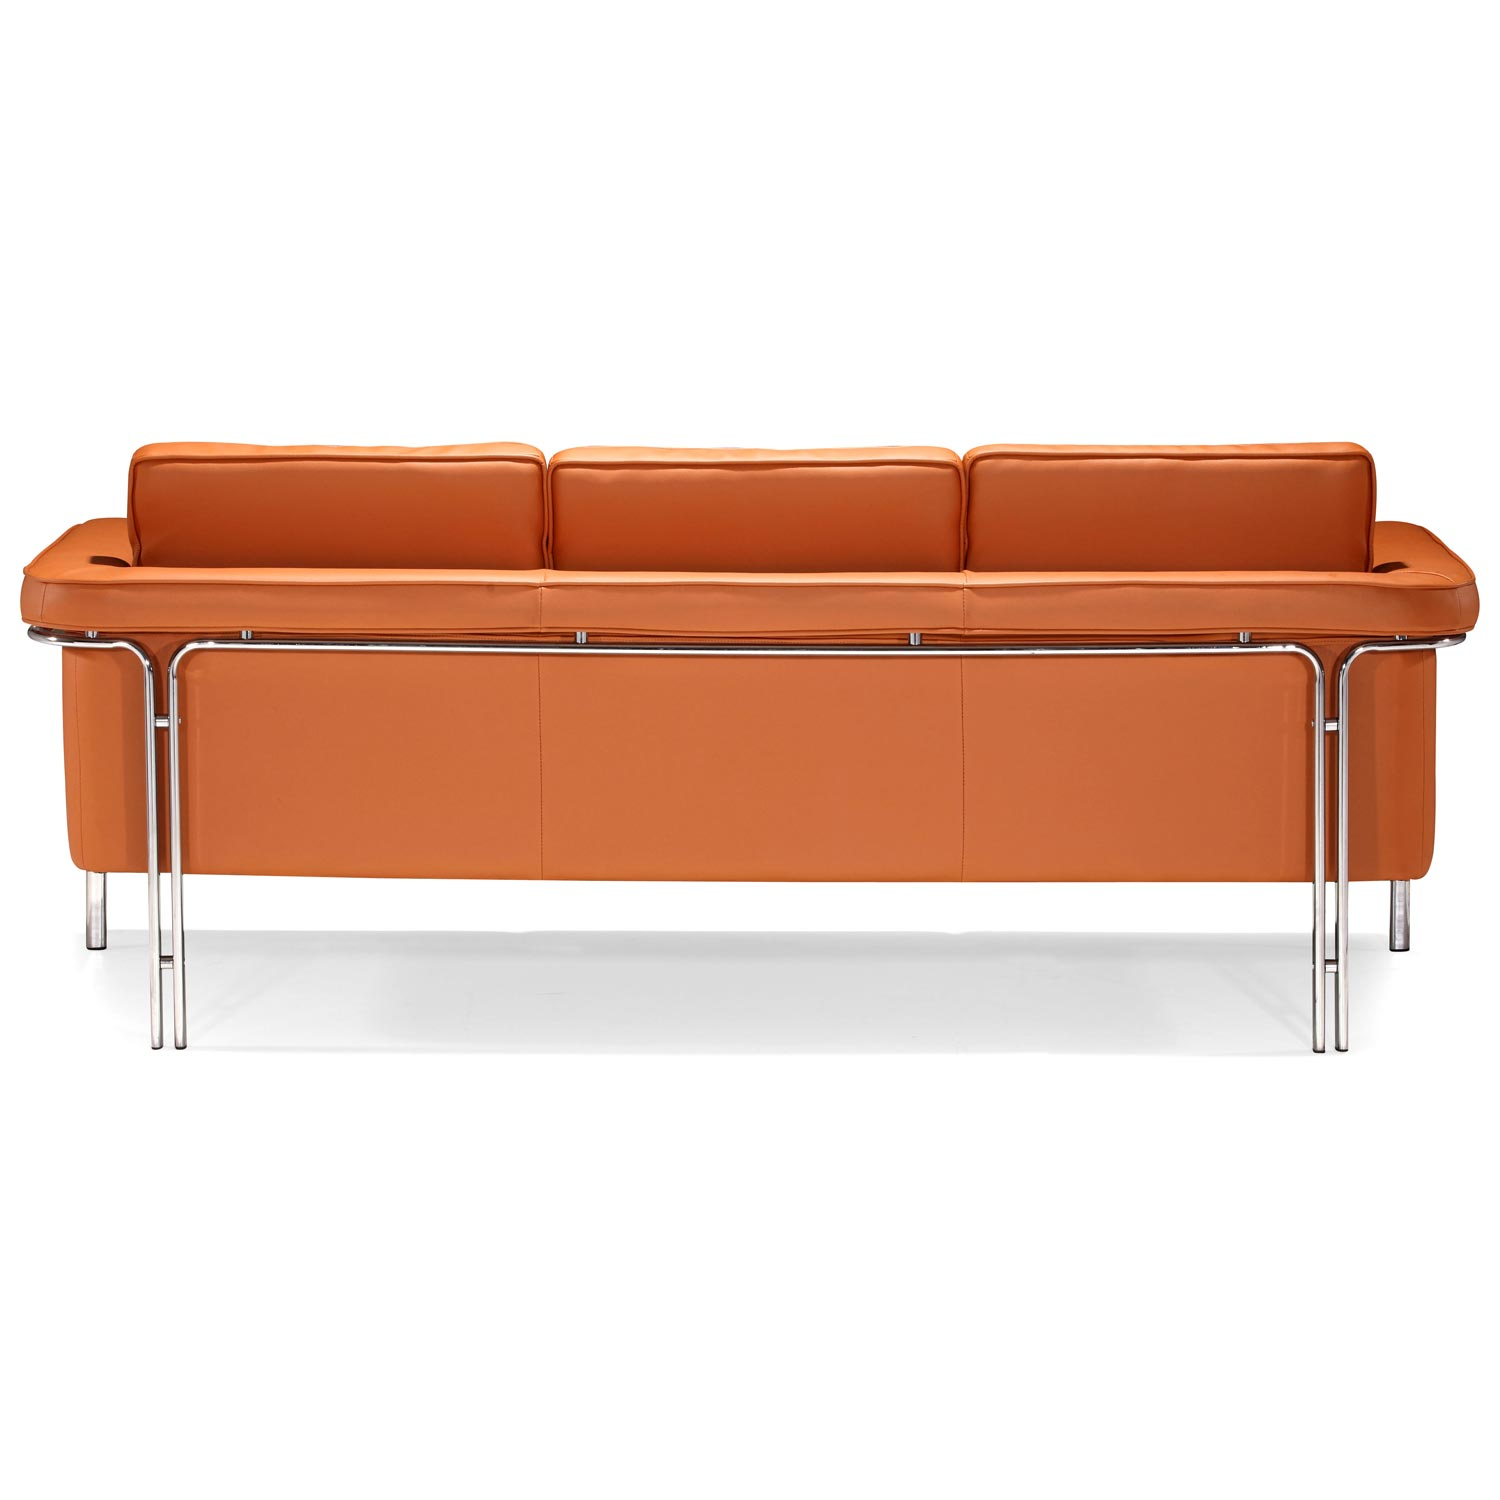 Singular Modern Sofa - Chrome Steel, Terracotta - ZM-900168